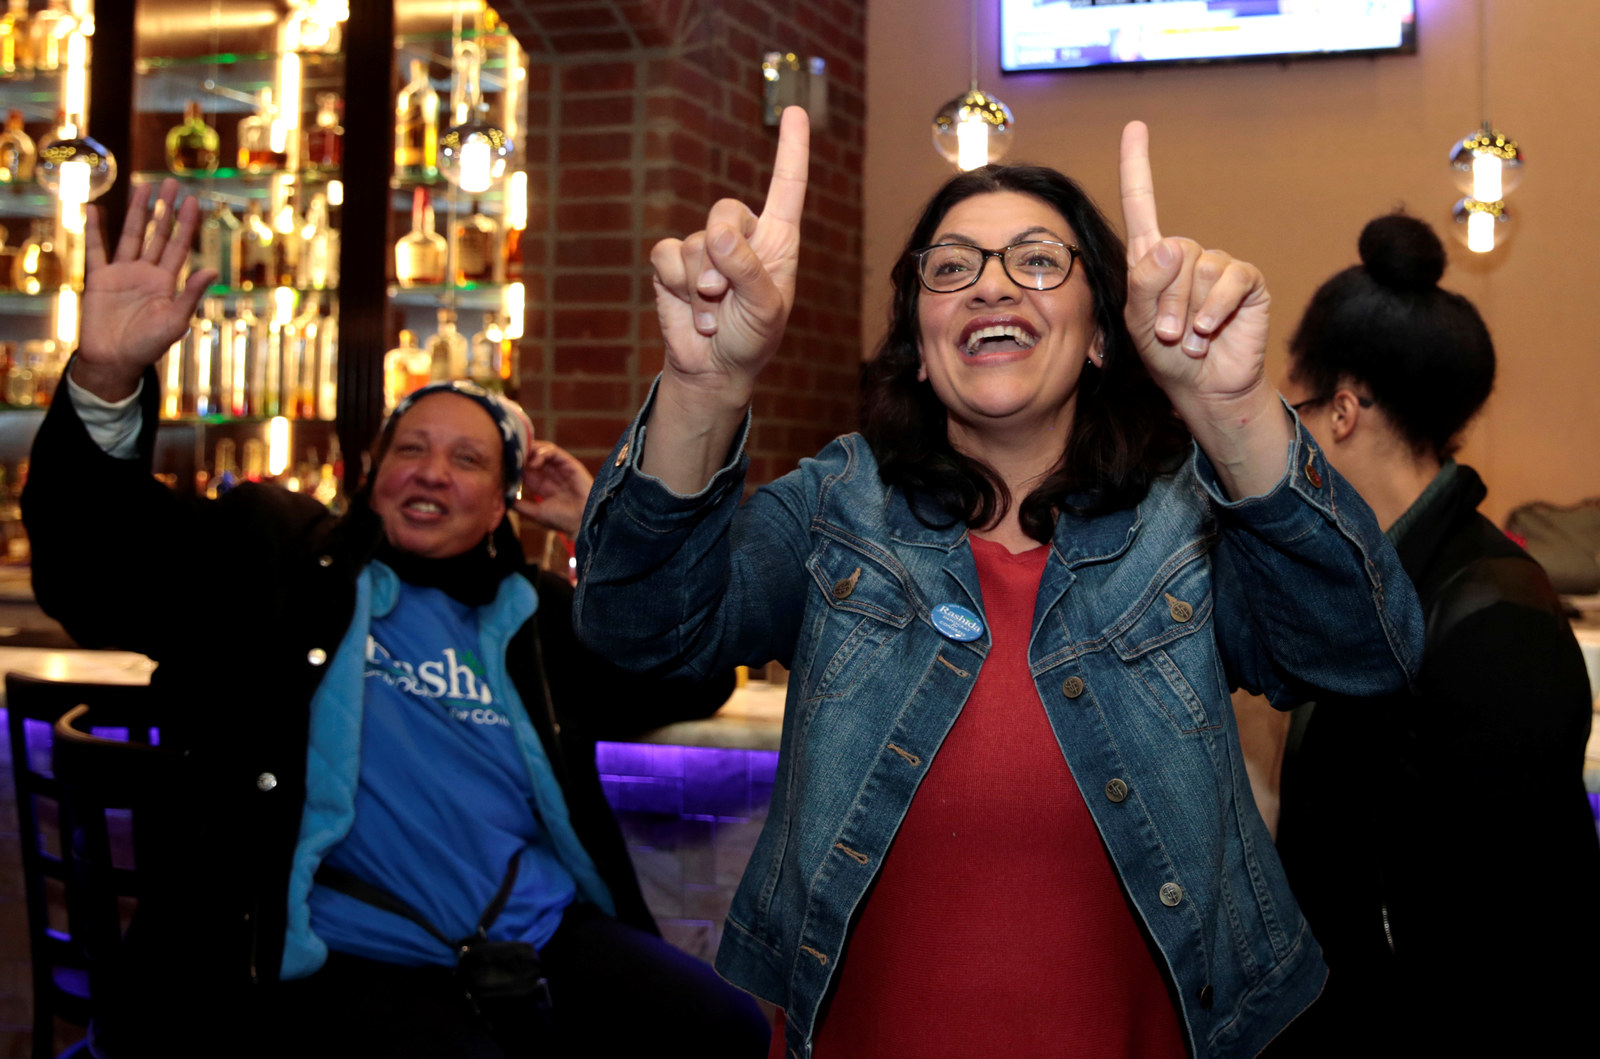 Rashida Tlaib celebrates with family and friends at her midterm election night party in Detroit, Nov. 6, 2018.